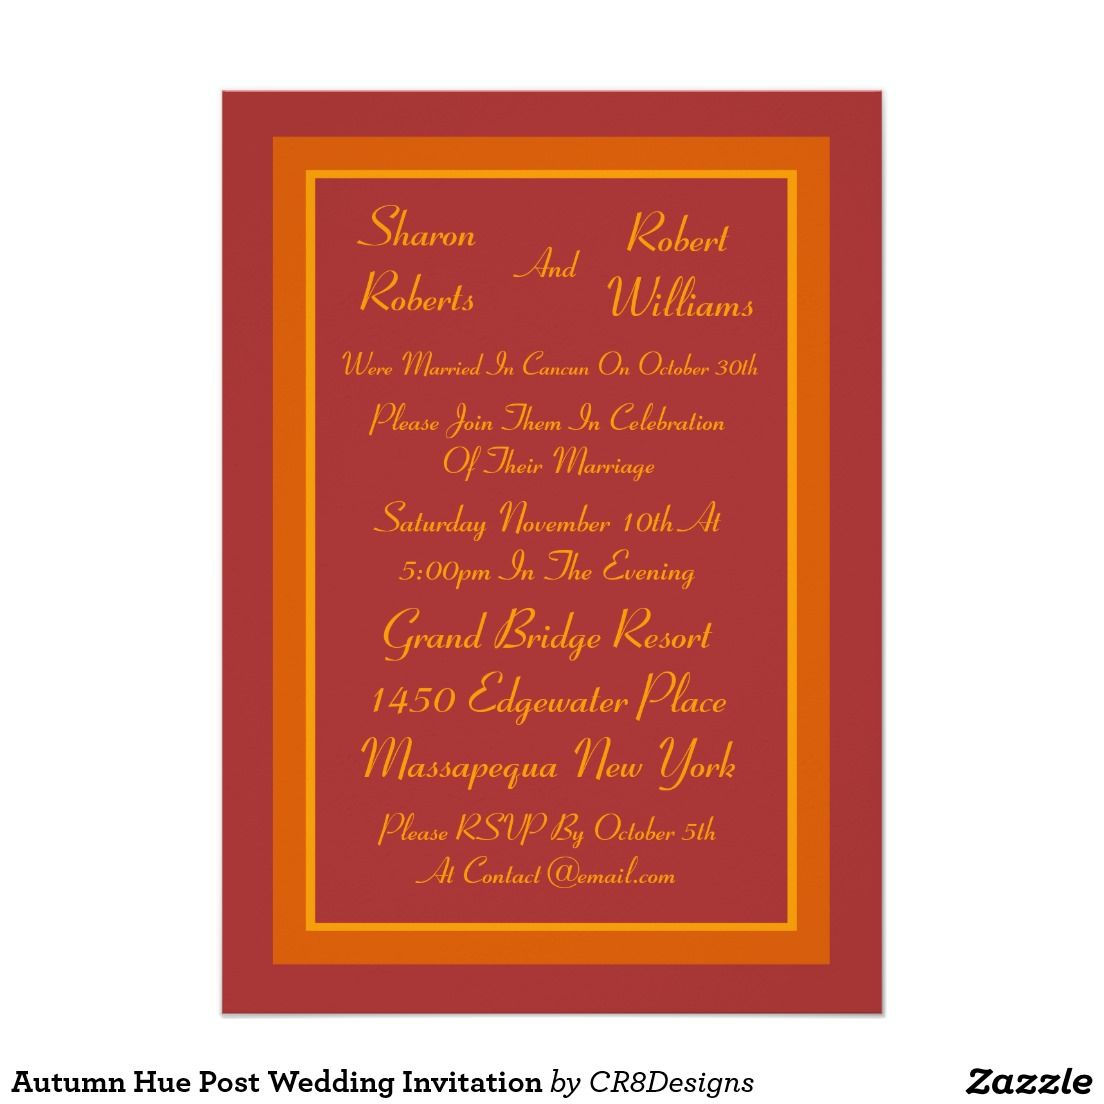 Autumn Hue Post Wedding Invitation | Unique invitations, Destination ...